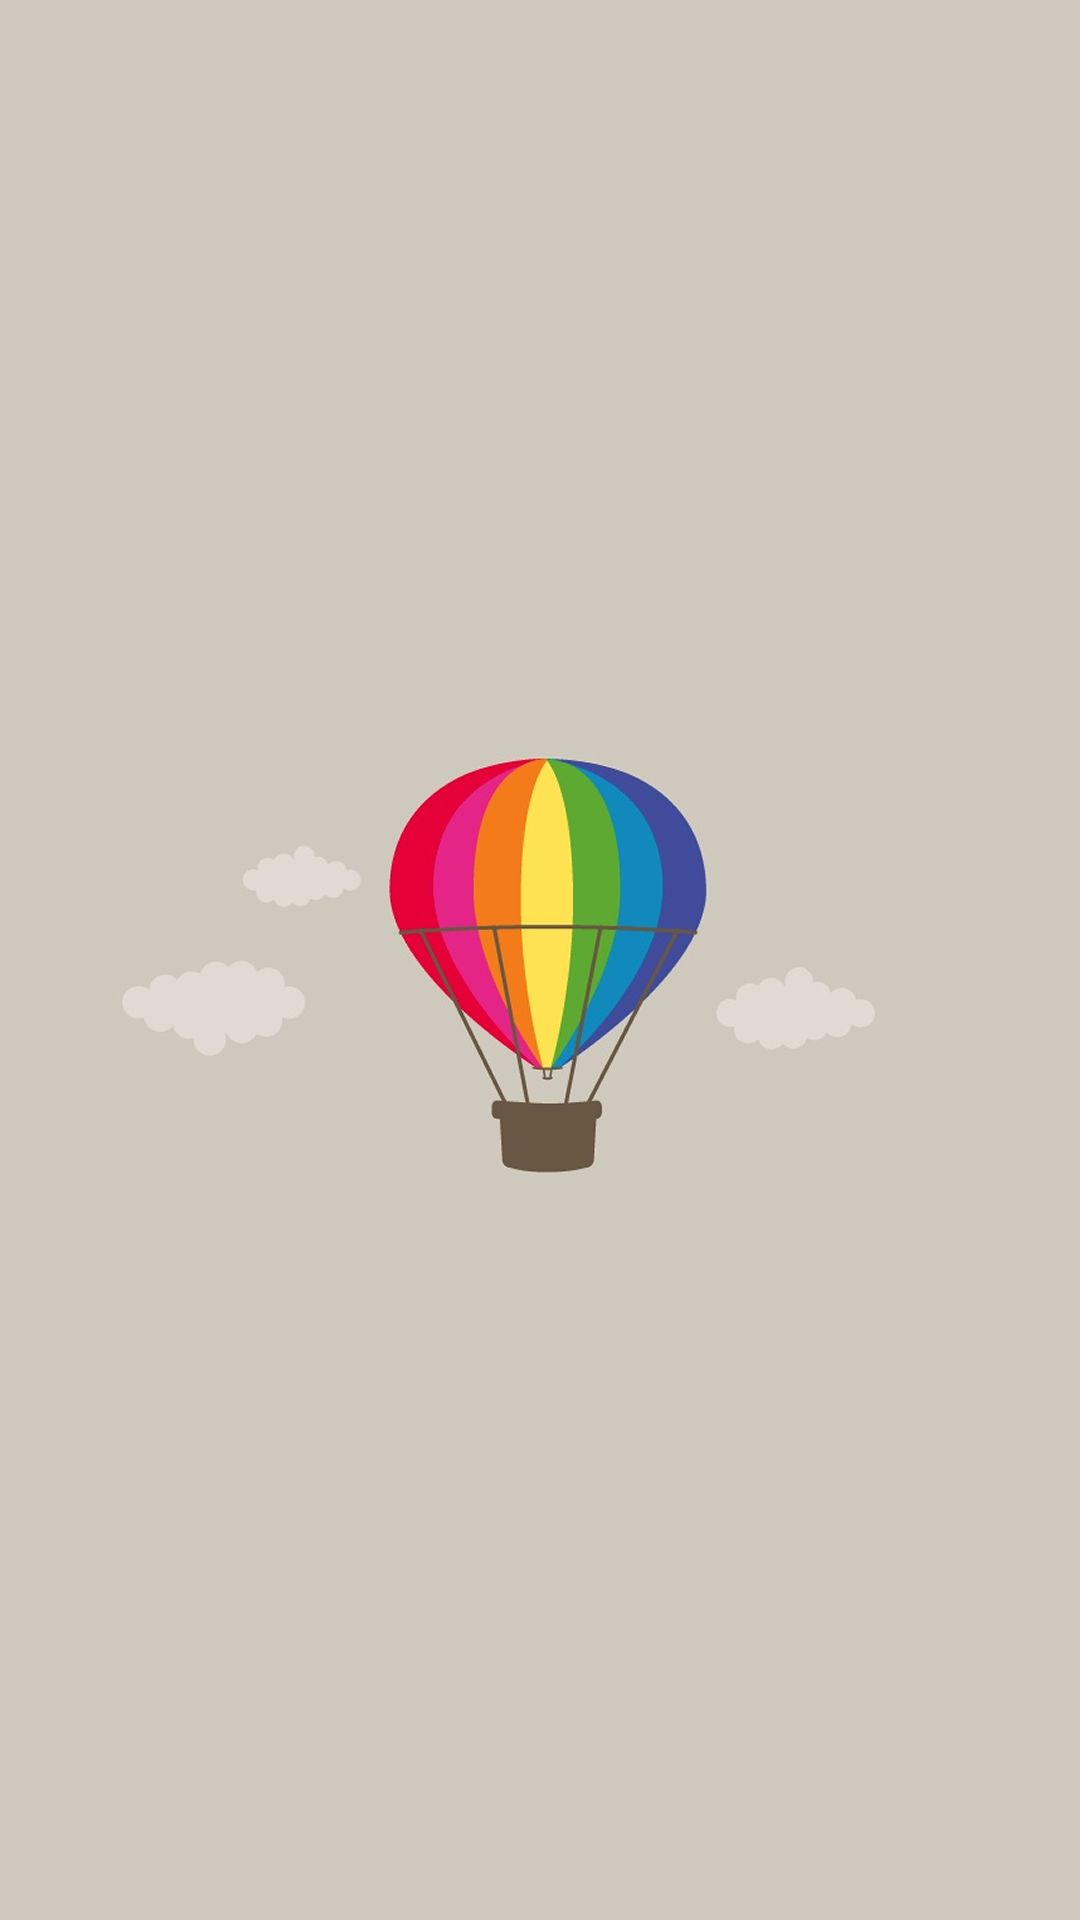 Simple Pure Hot Air Balloon Illustration Background iPhone ...